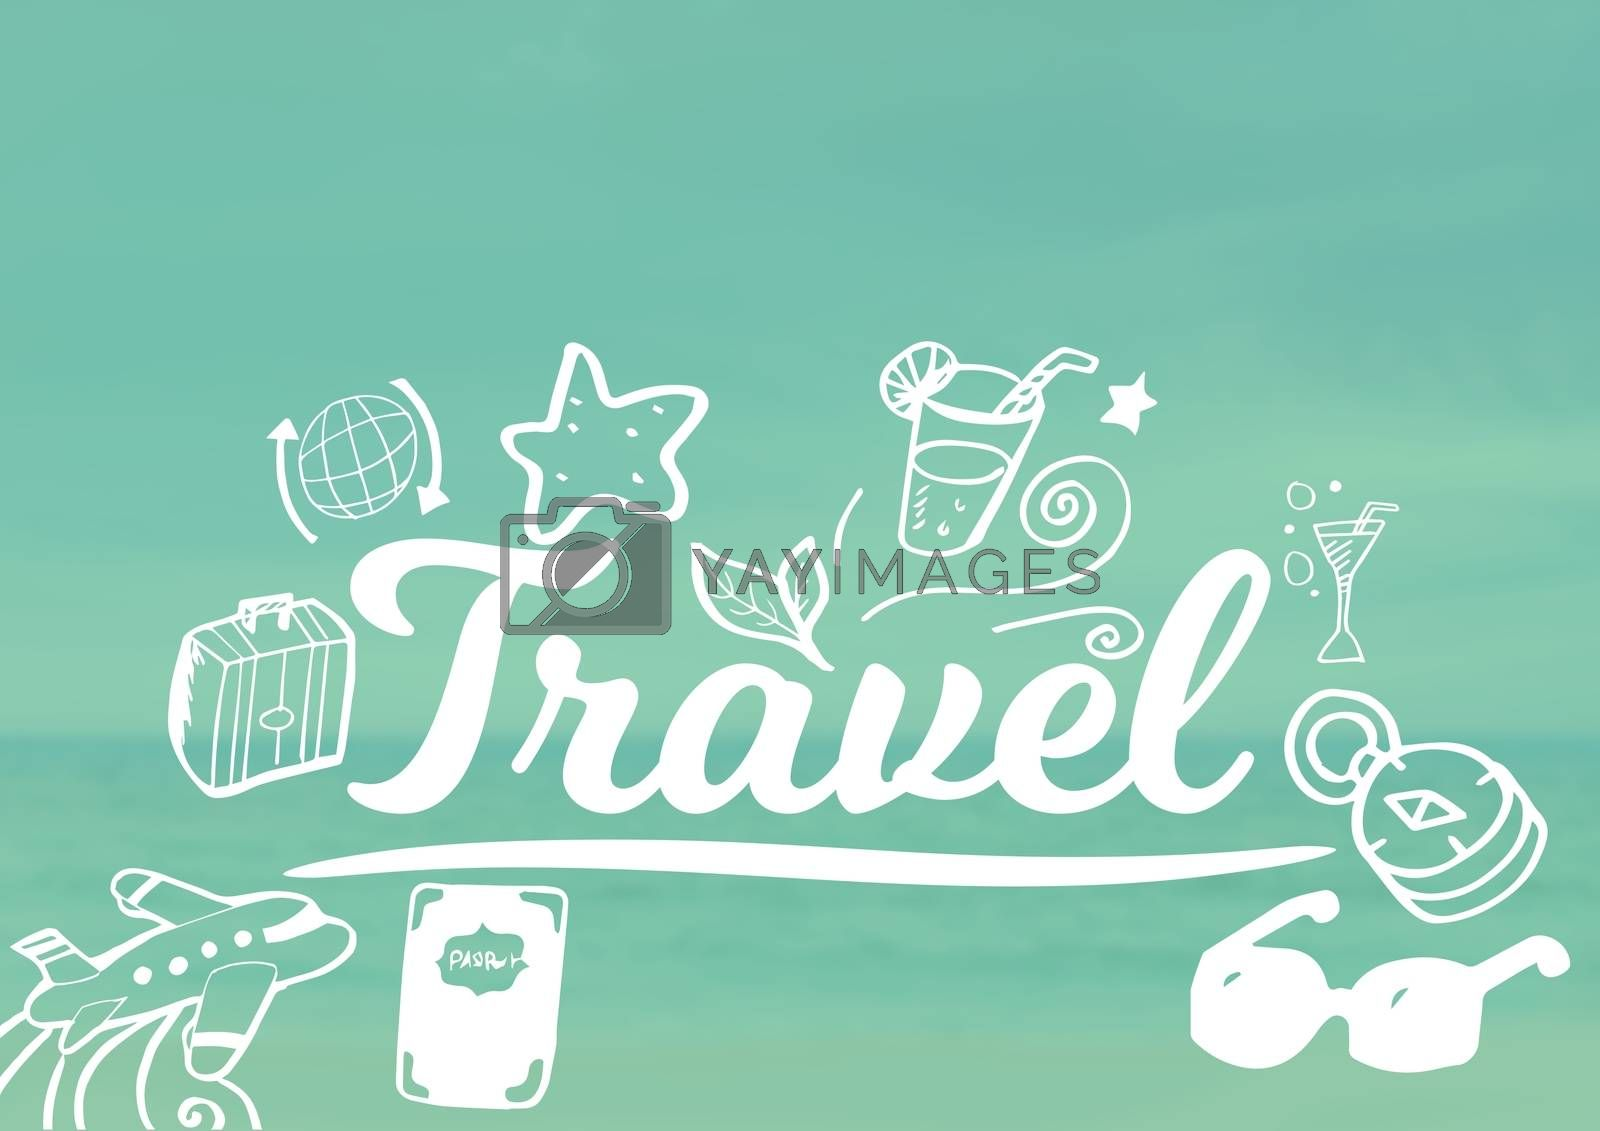 Digital composite of Travel text with drawings graphics